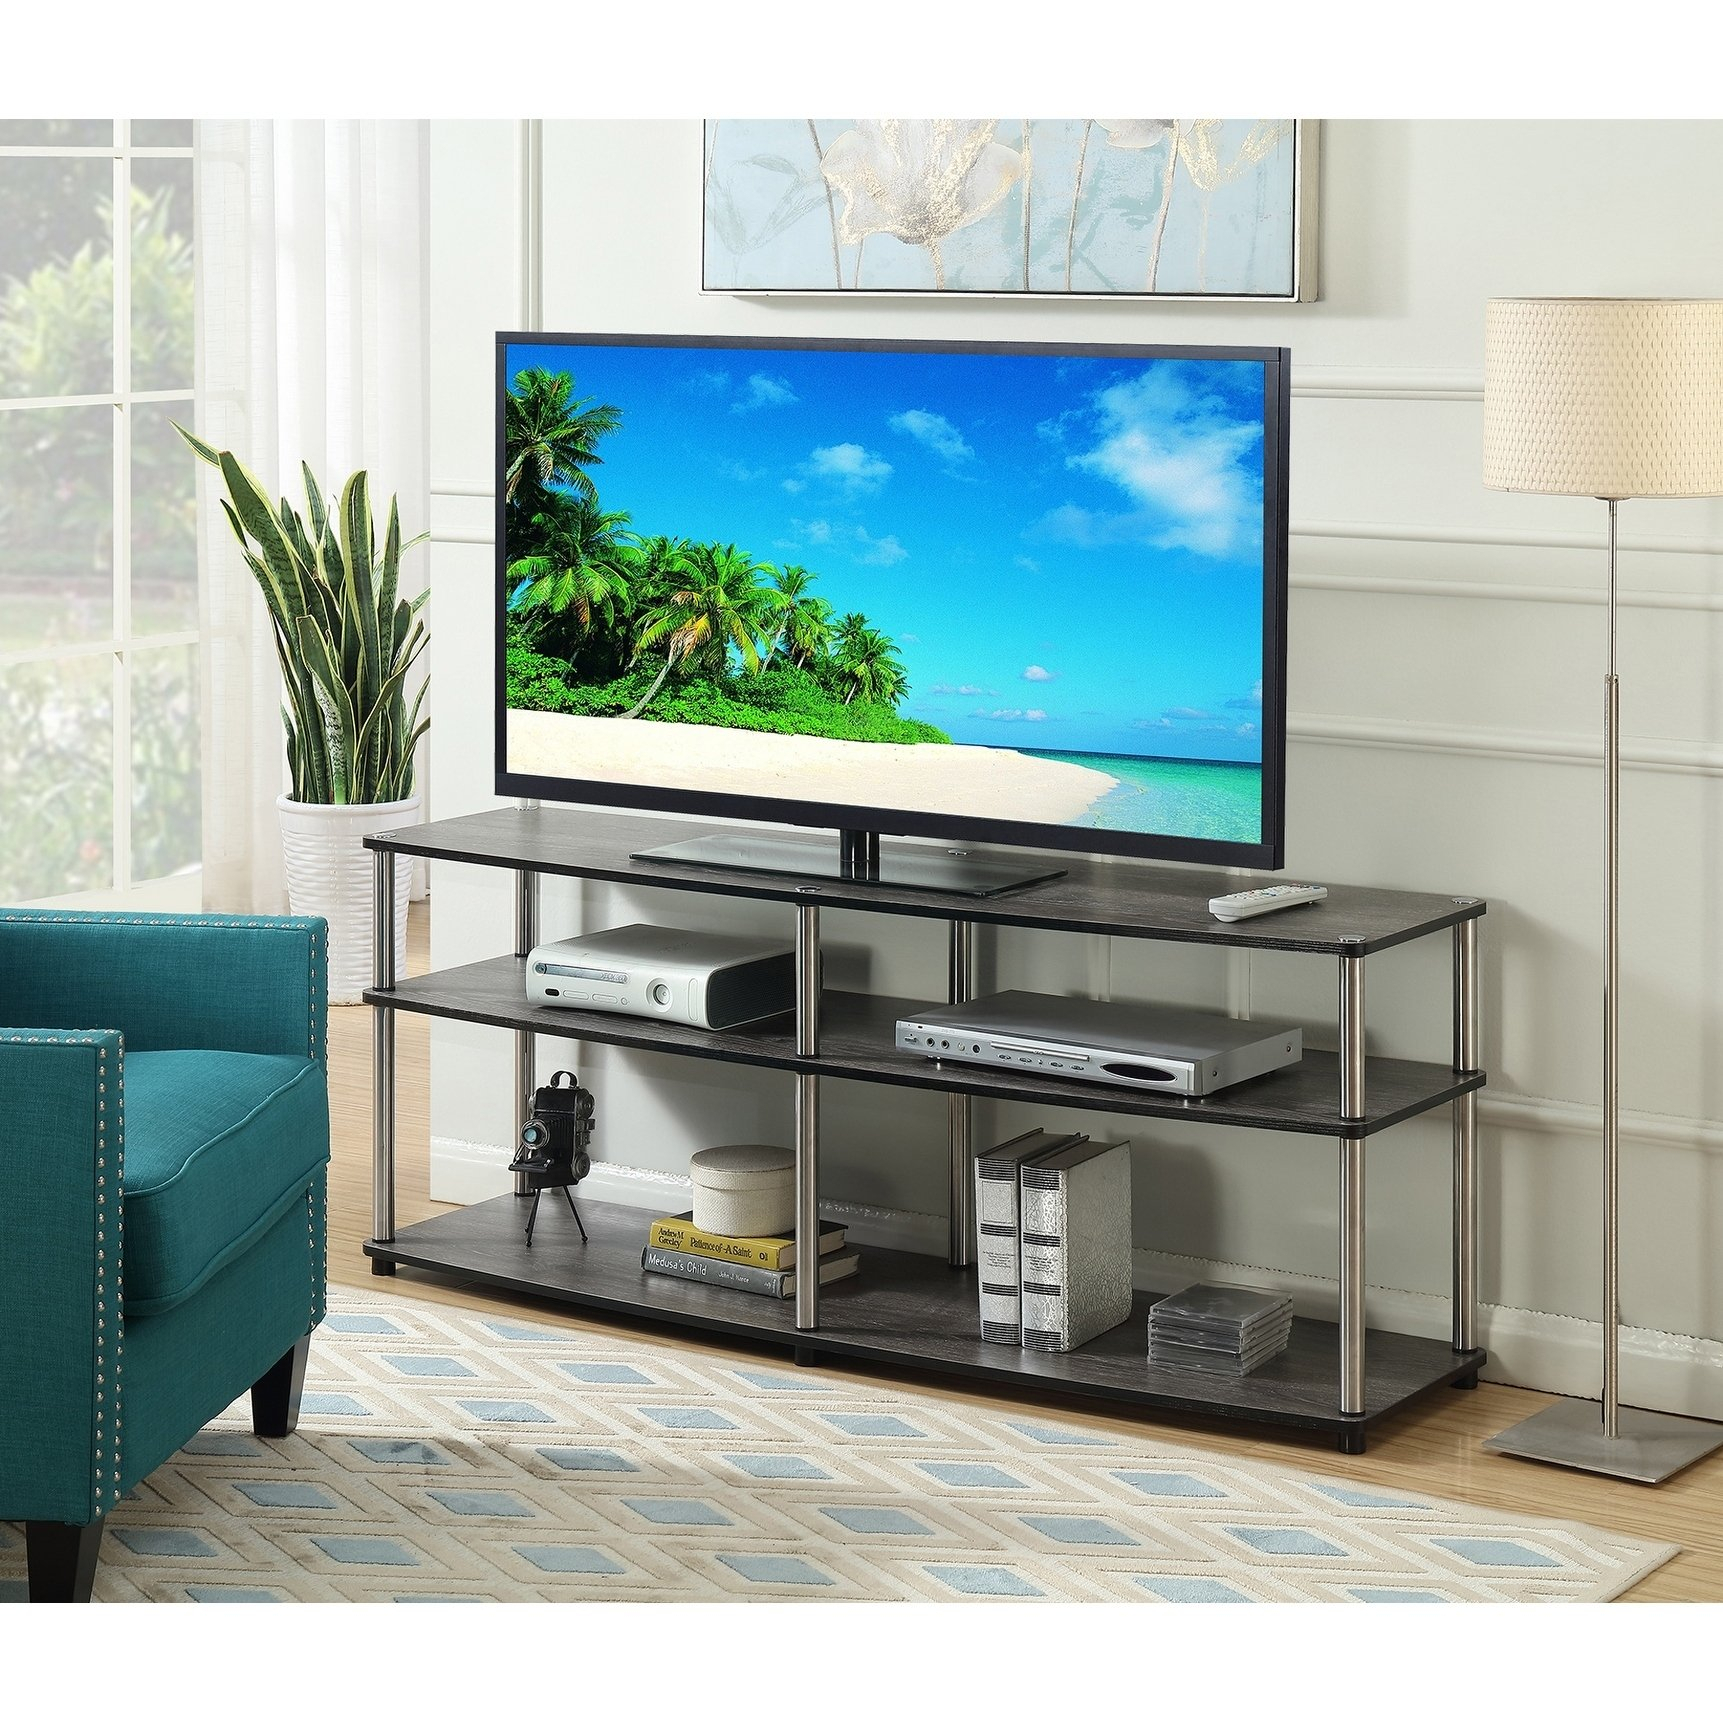 Buy Grey, 42 - 60 Inches Tv Stands & Entertainment Centers Online At inside Canyon 54 Inch Tv Stands (Image 1 of 30)